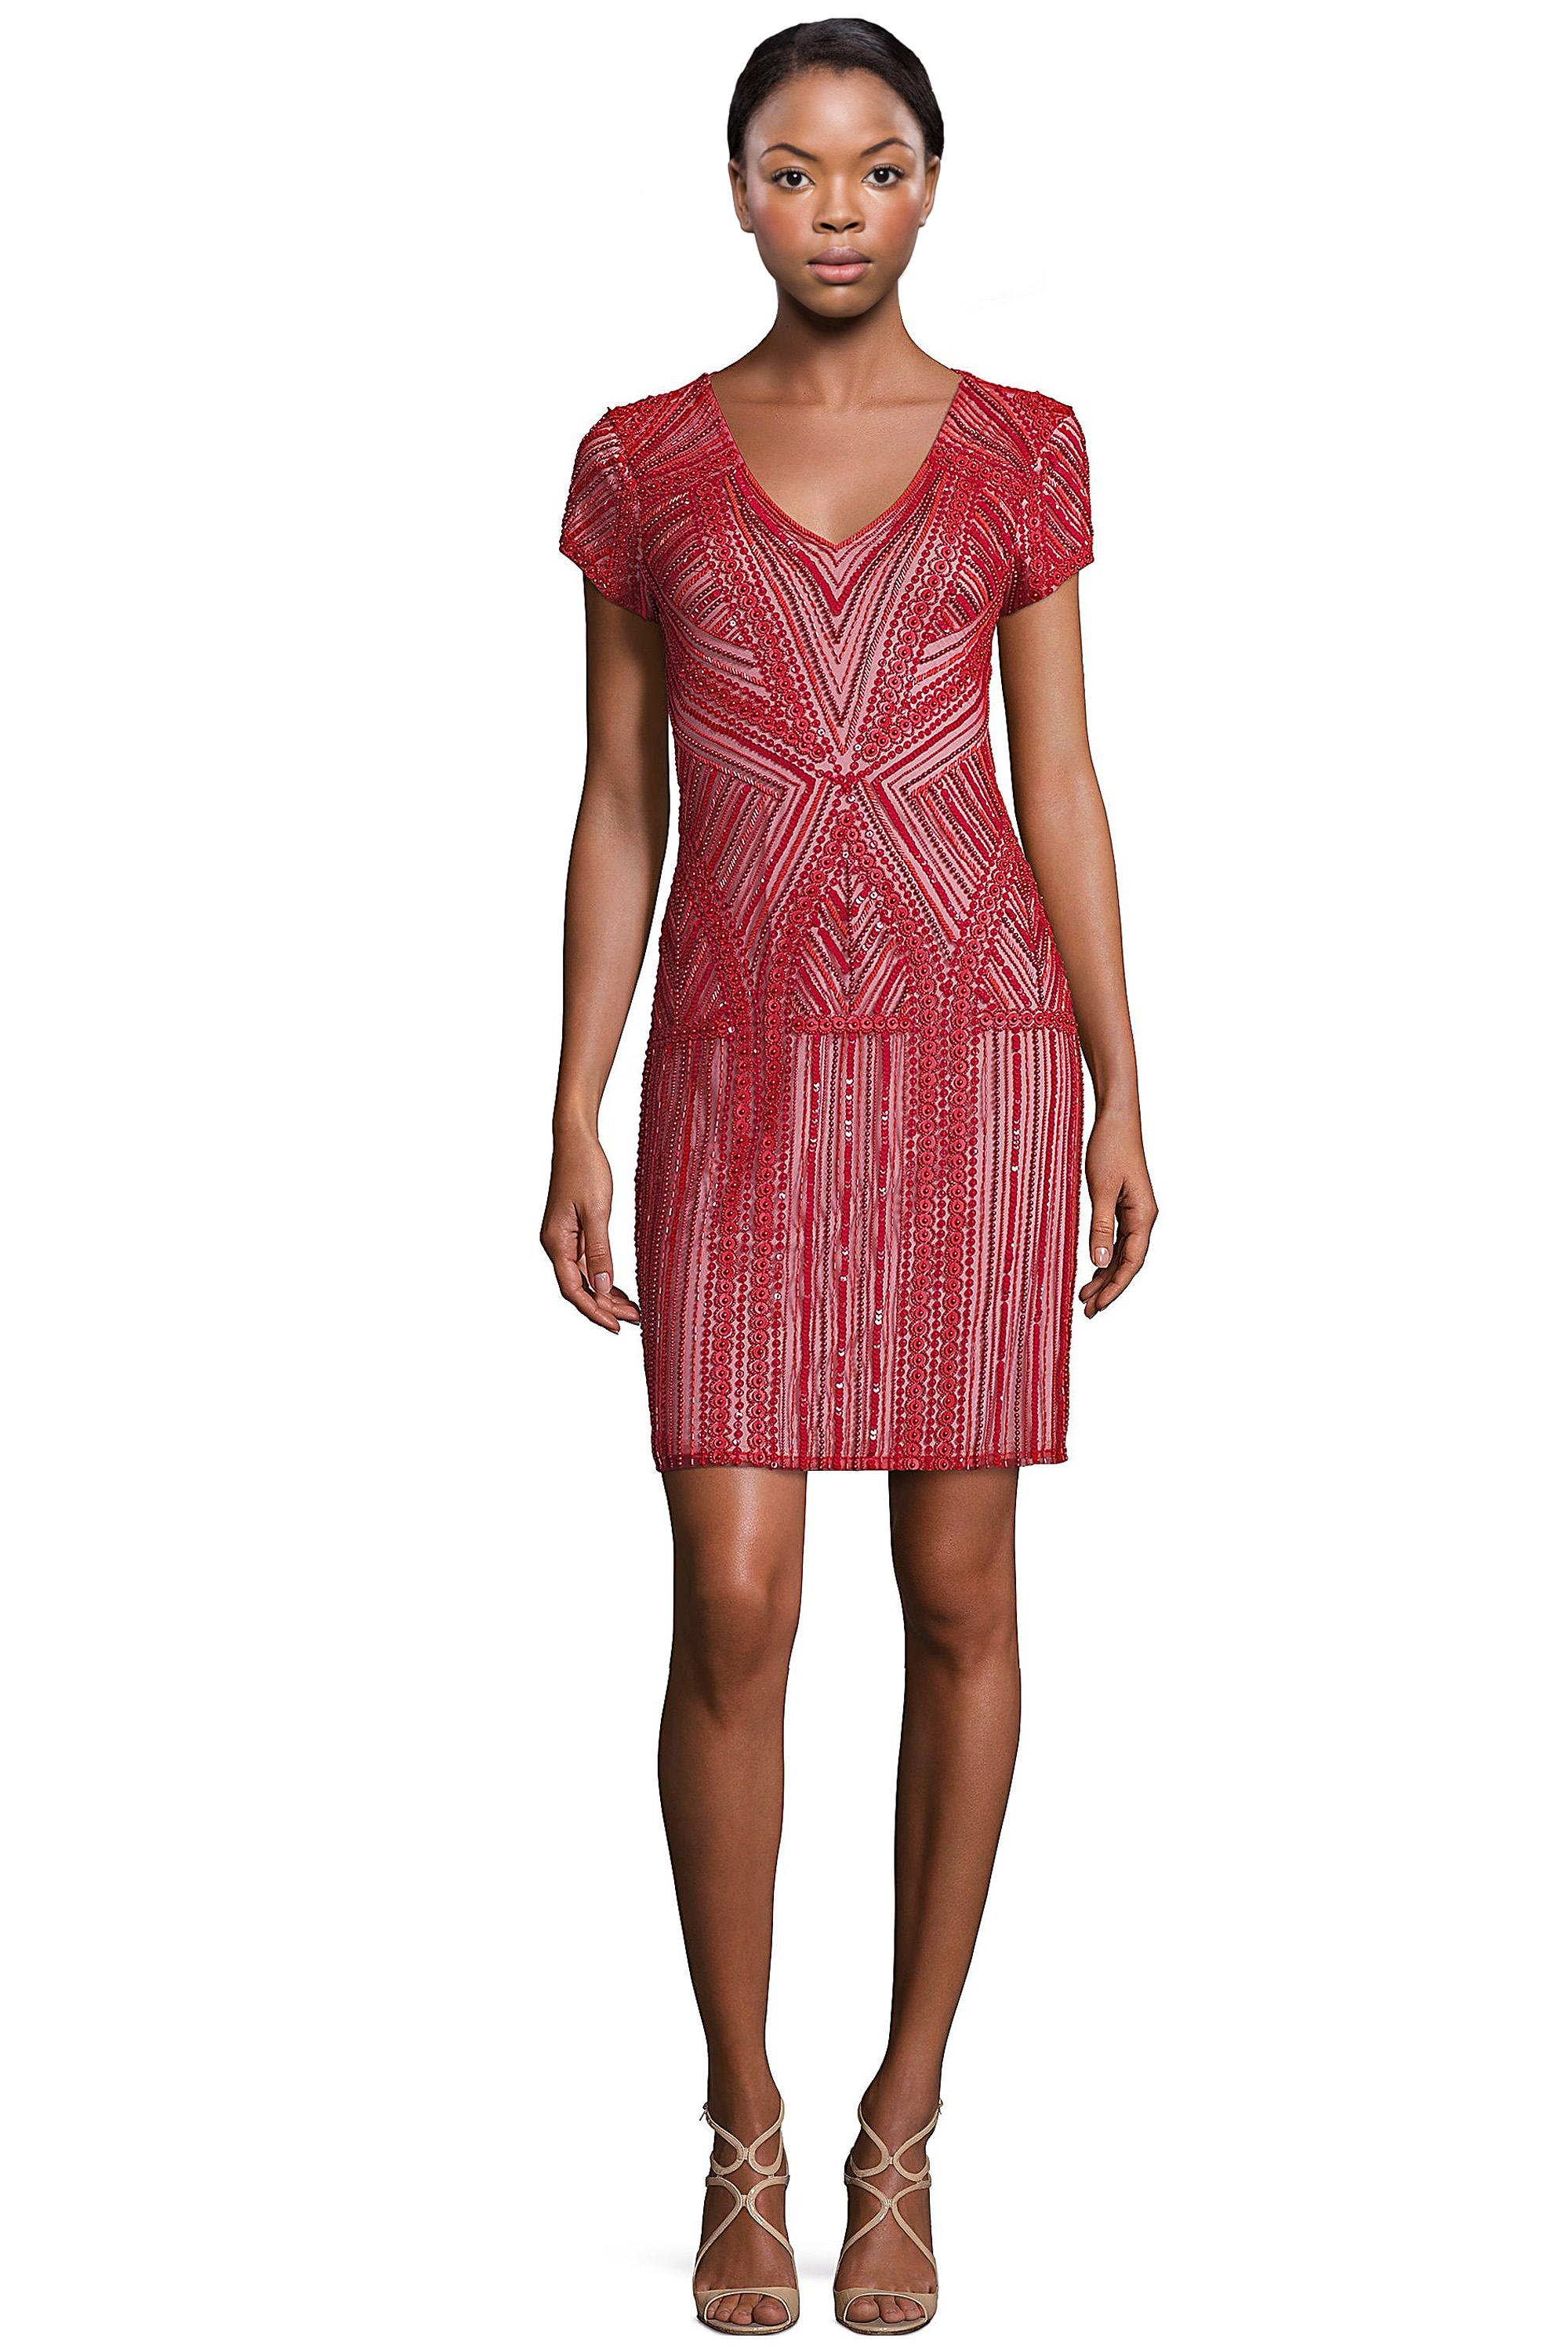 Parker Black Serena Red Embellished Short Sleeve Cocktail Dress 6 ...